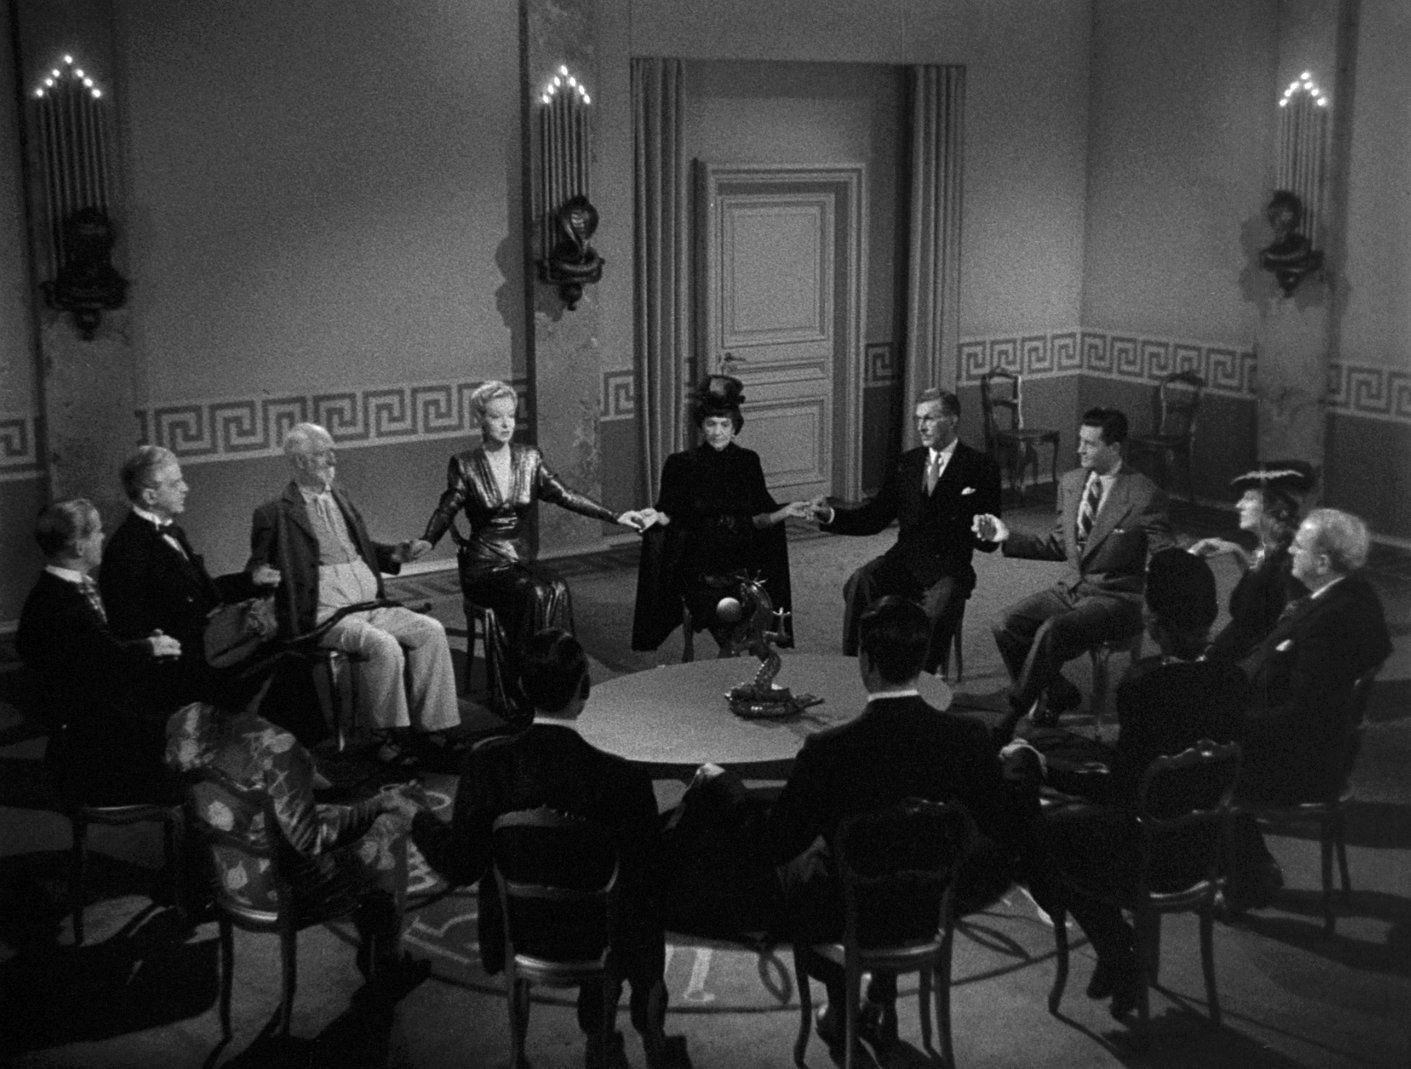 Ray Milland, Dan Duryea, Hillary Brooke, Carl Esmond, Mary Field, and Alan Napier in Ministry of Fear (1944)